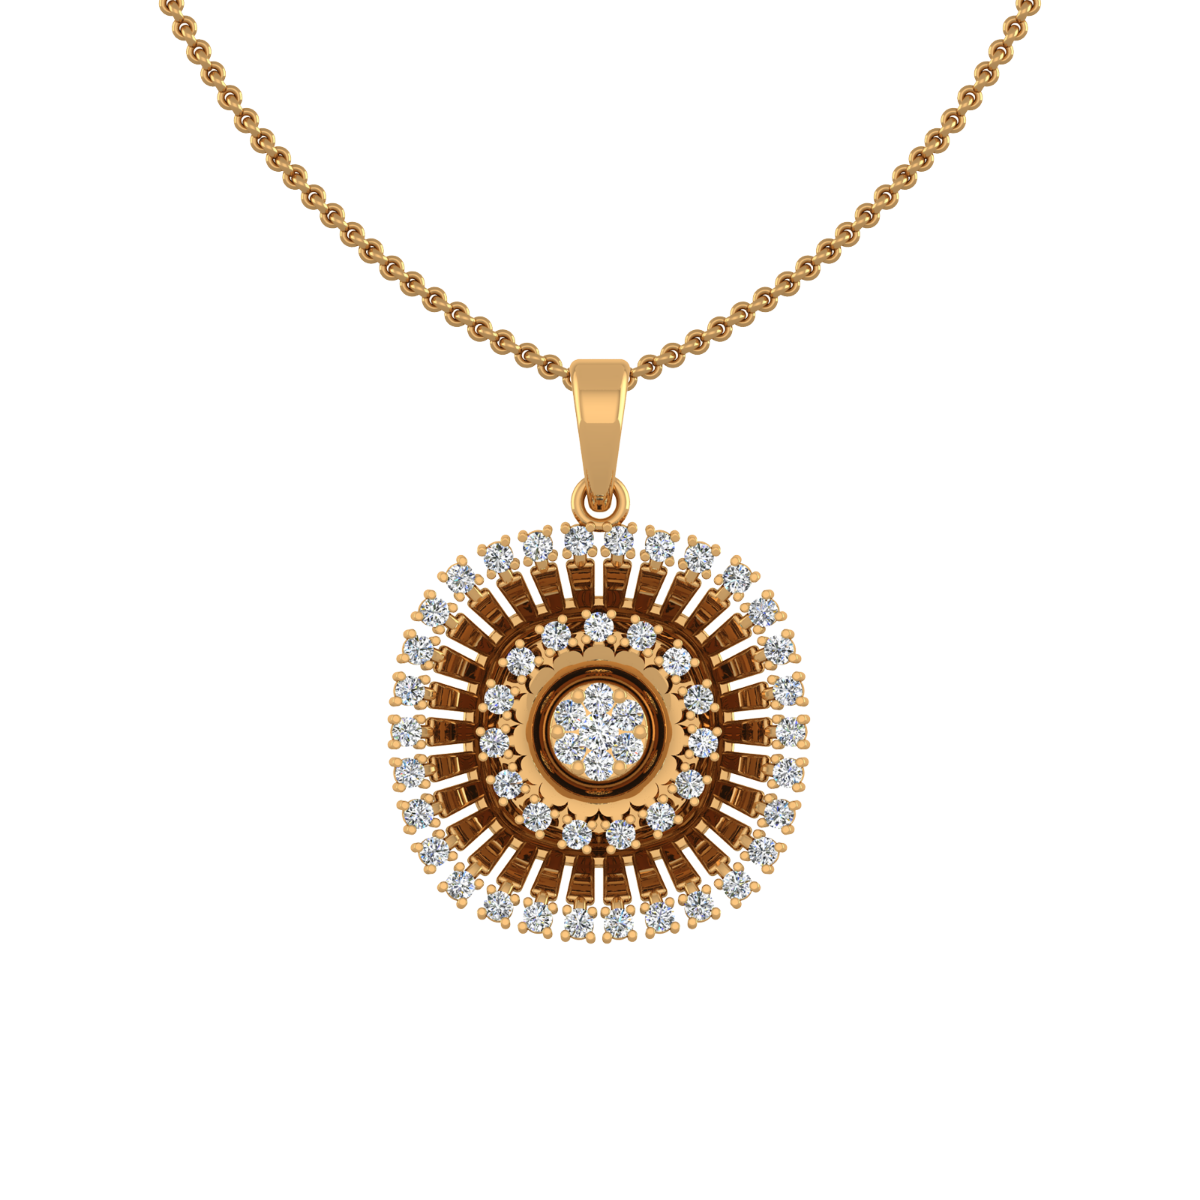 The Sunburst Gold Diamond Pendant